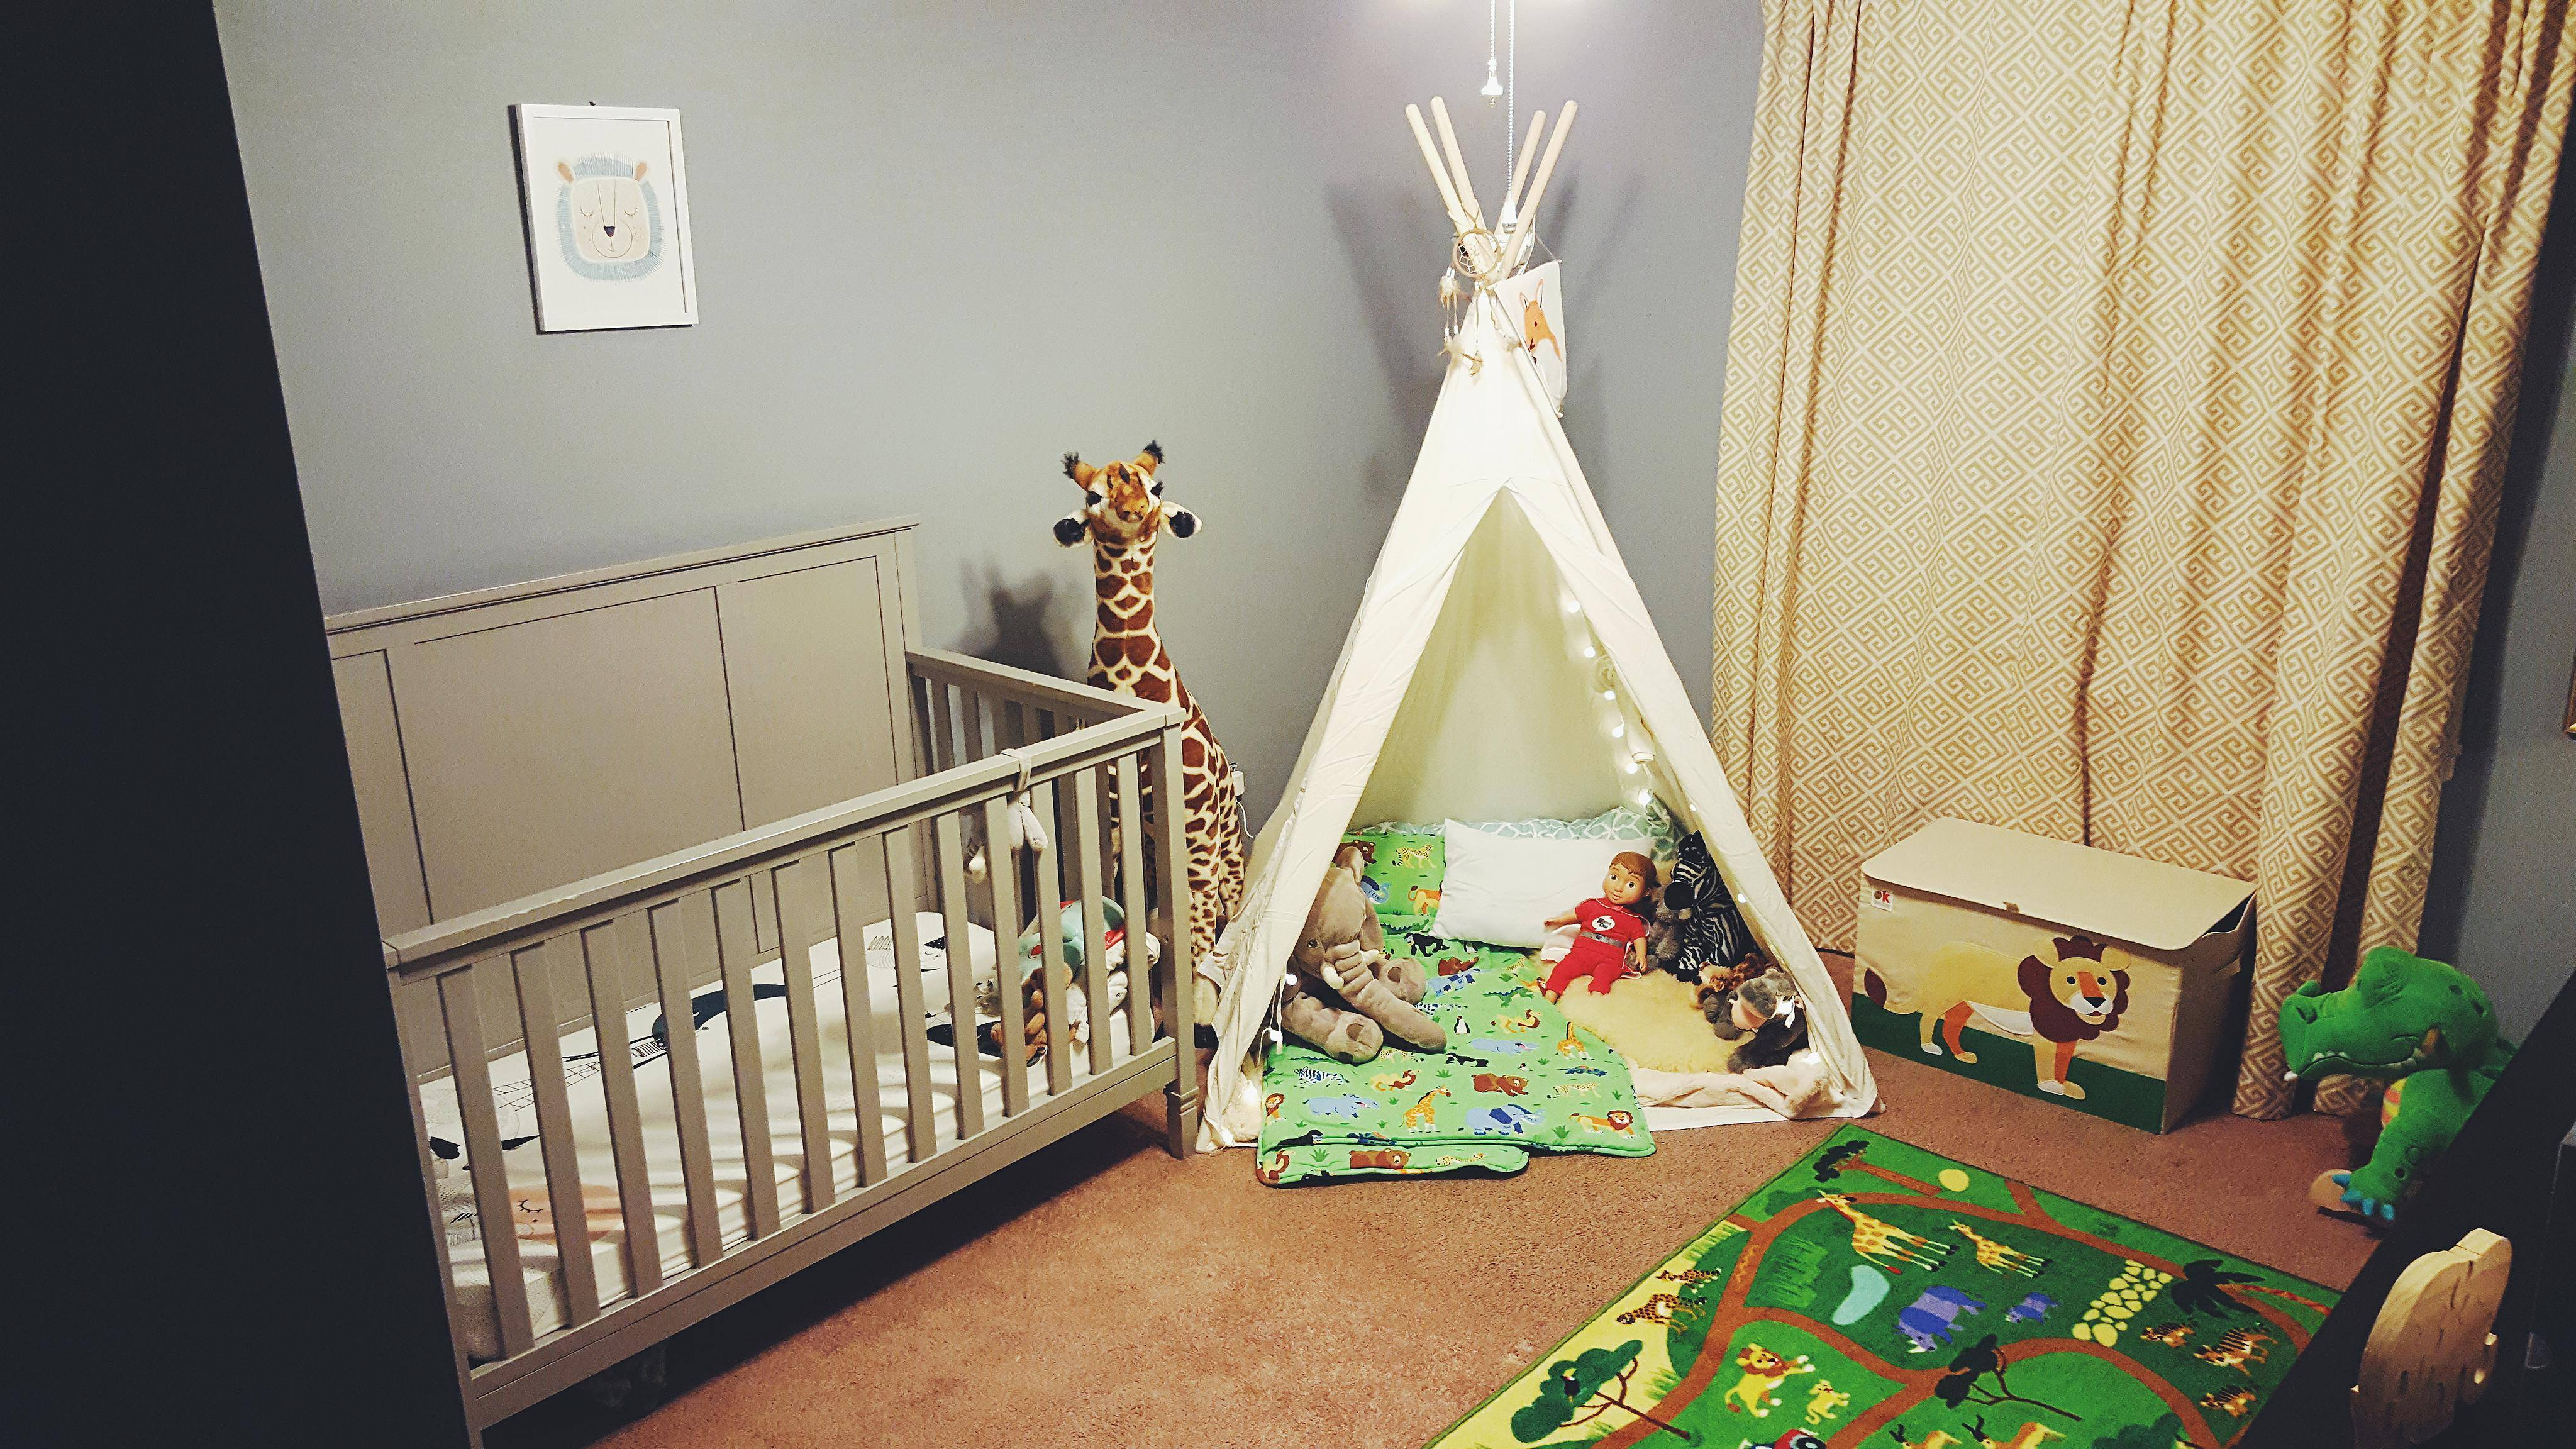 leopolds bedroom update-toddler room-wildkin-olive kids-home rennovation